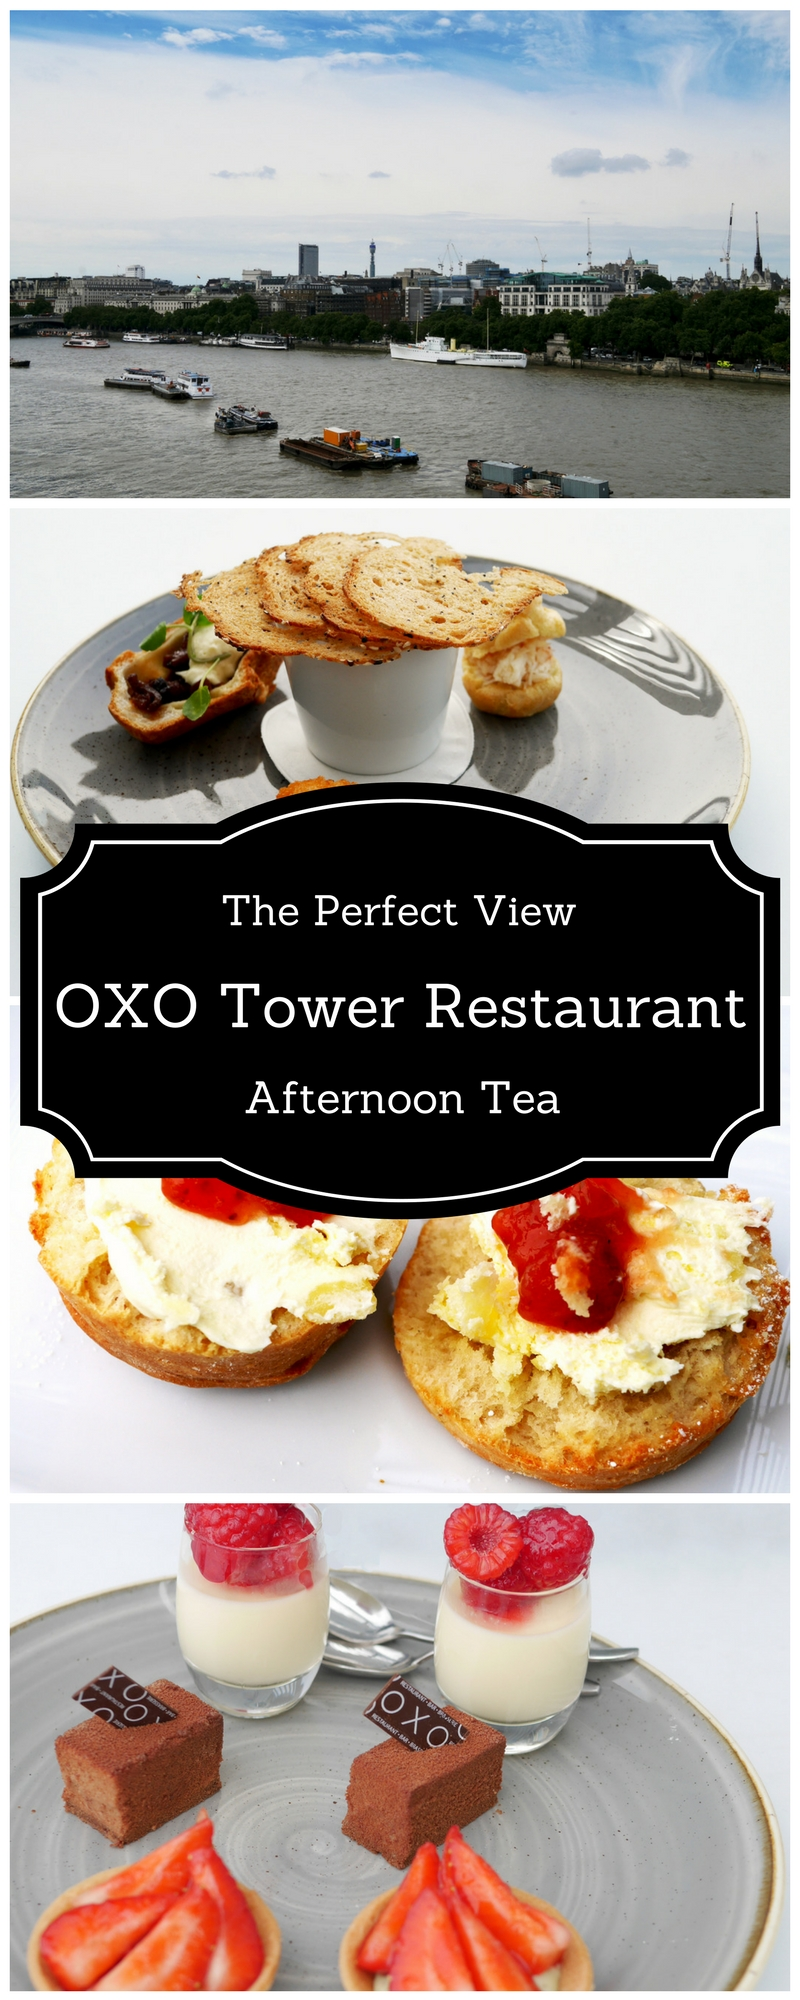 Afternoon Tea at Oxo Tower Restaurant, London South Bank - Afternoon Tea with a View